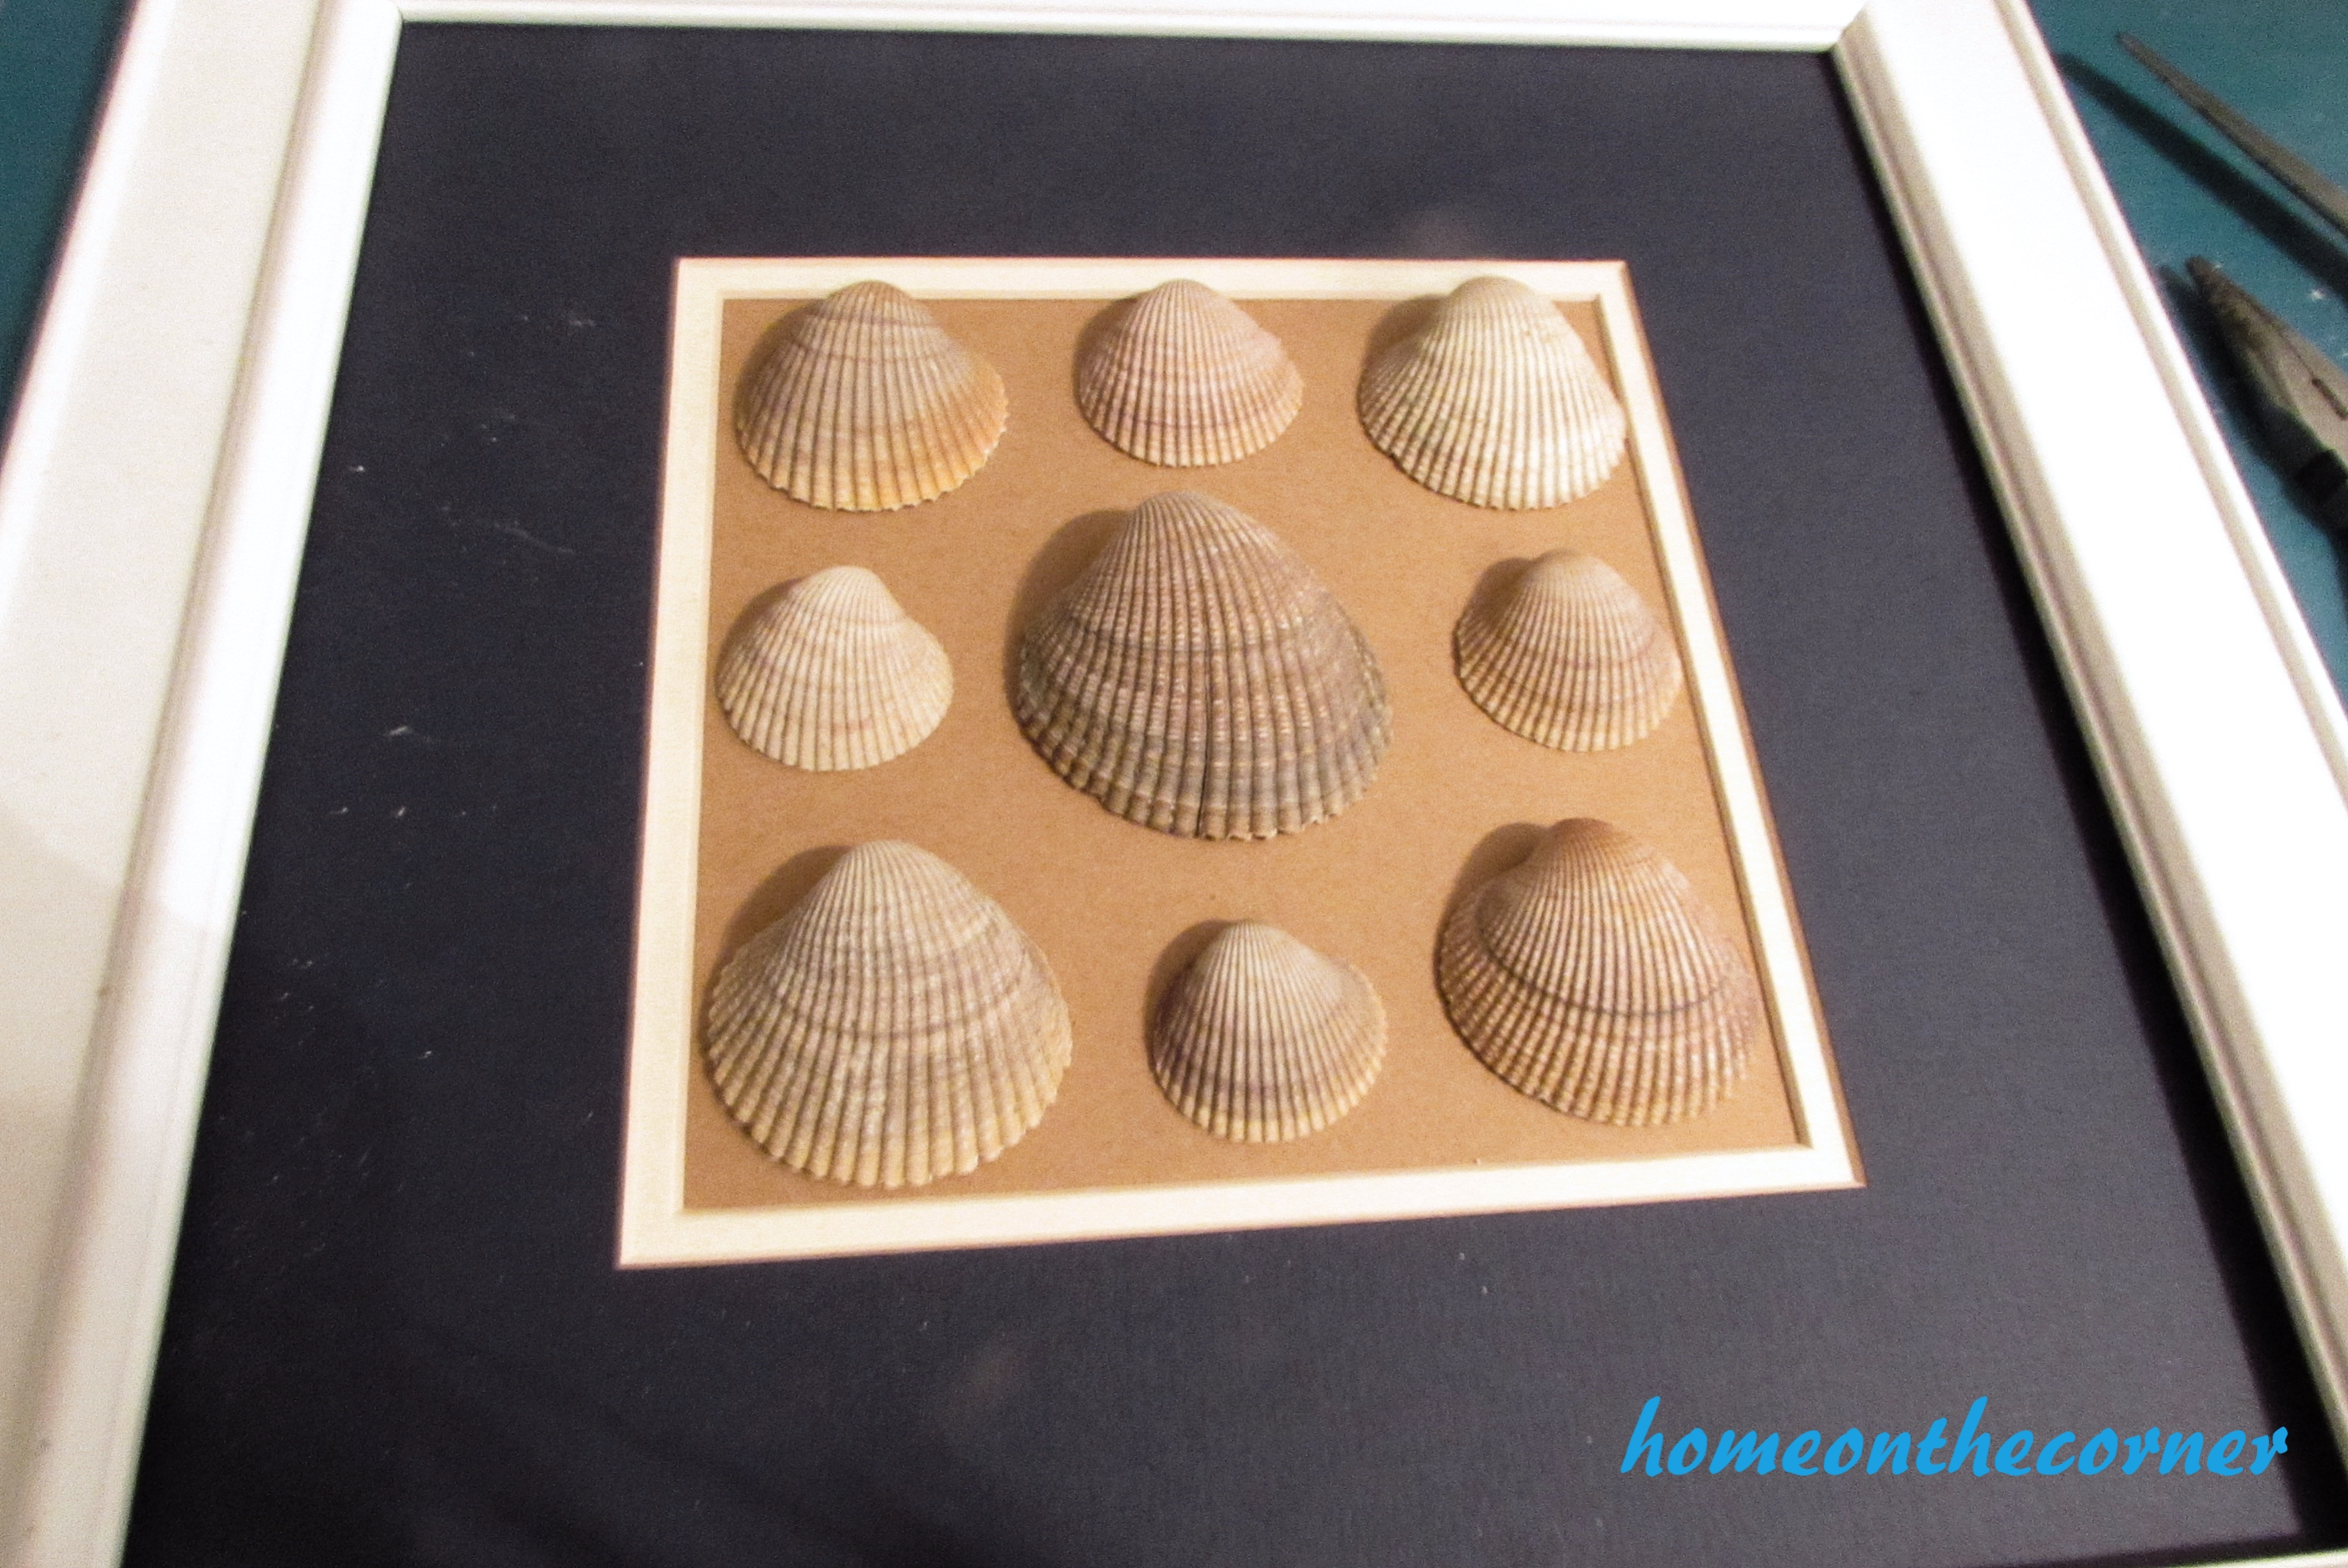 seashell specimen frame clam shells